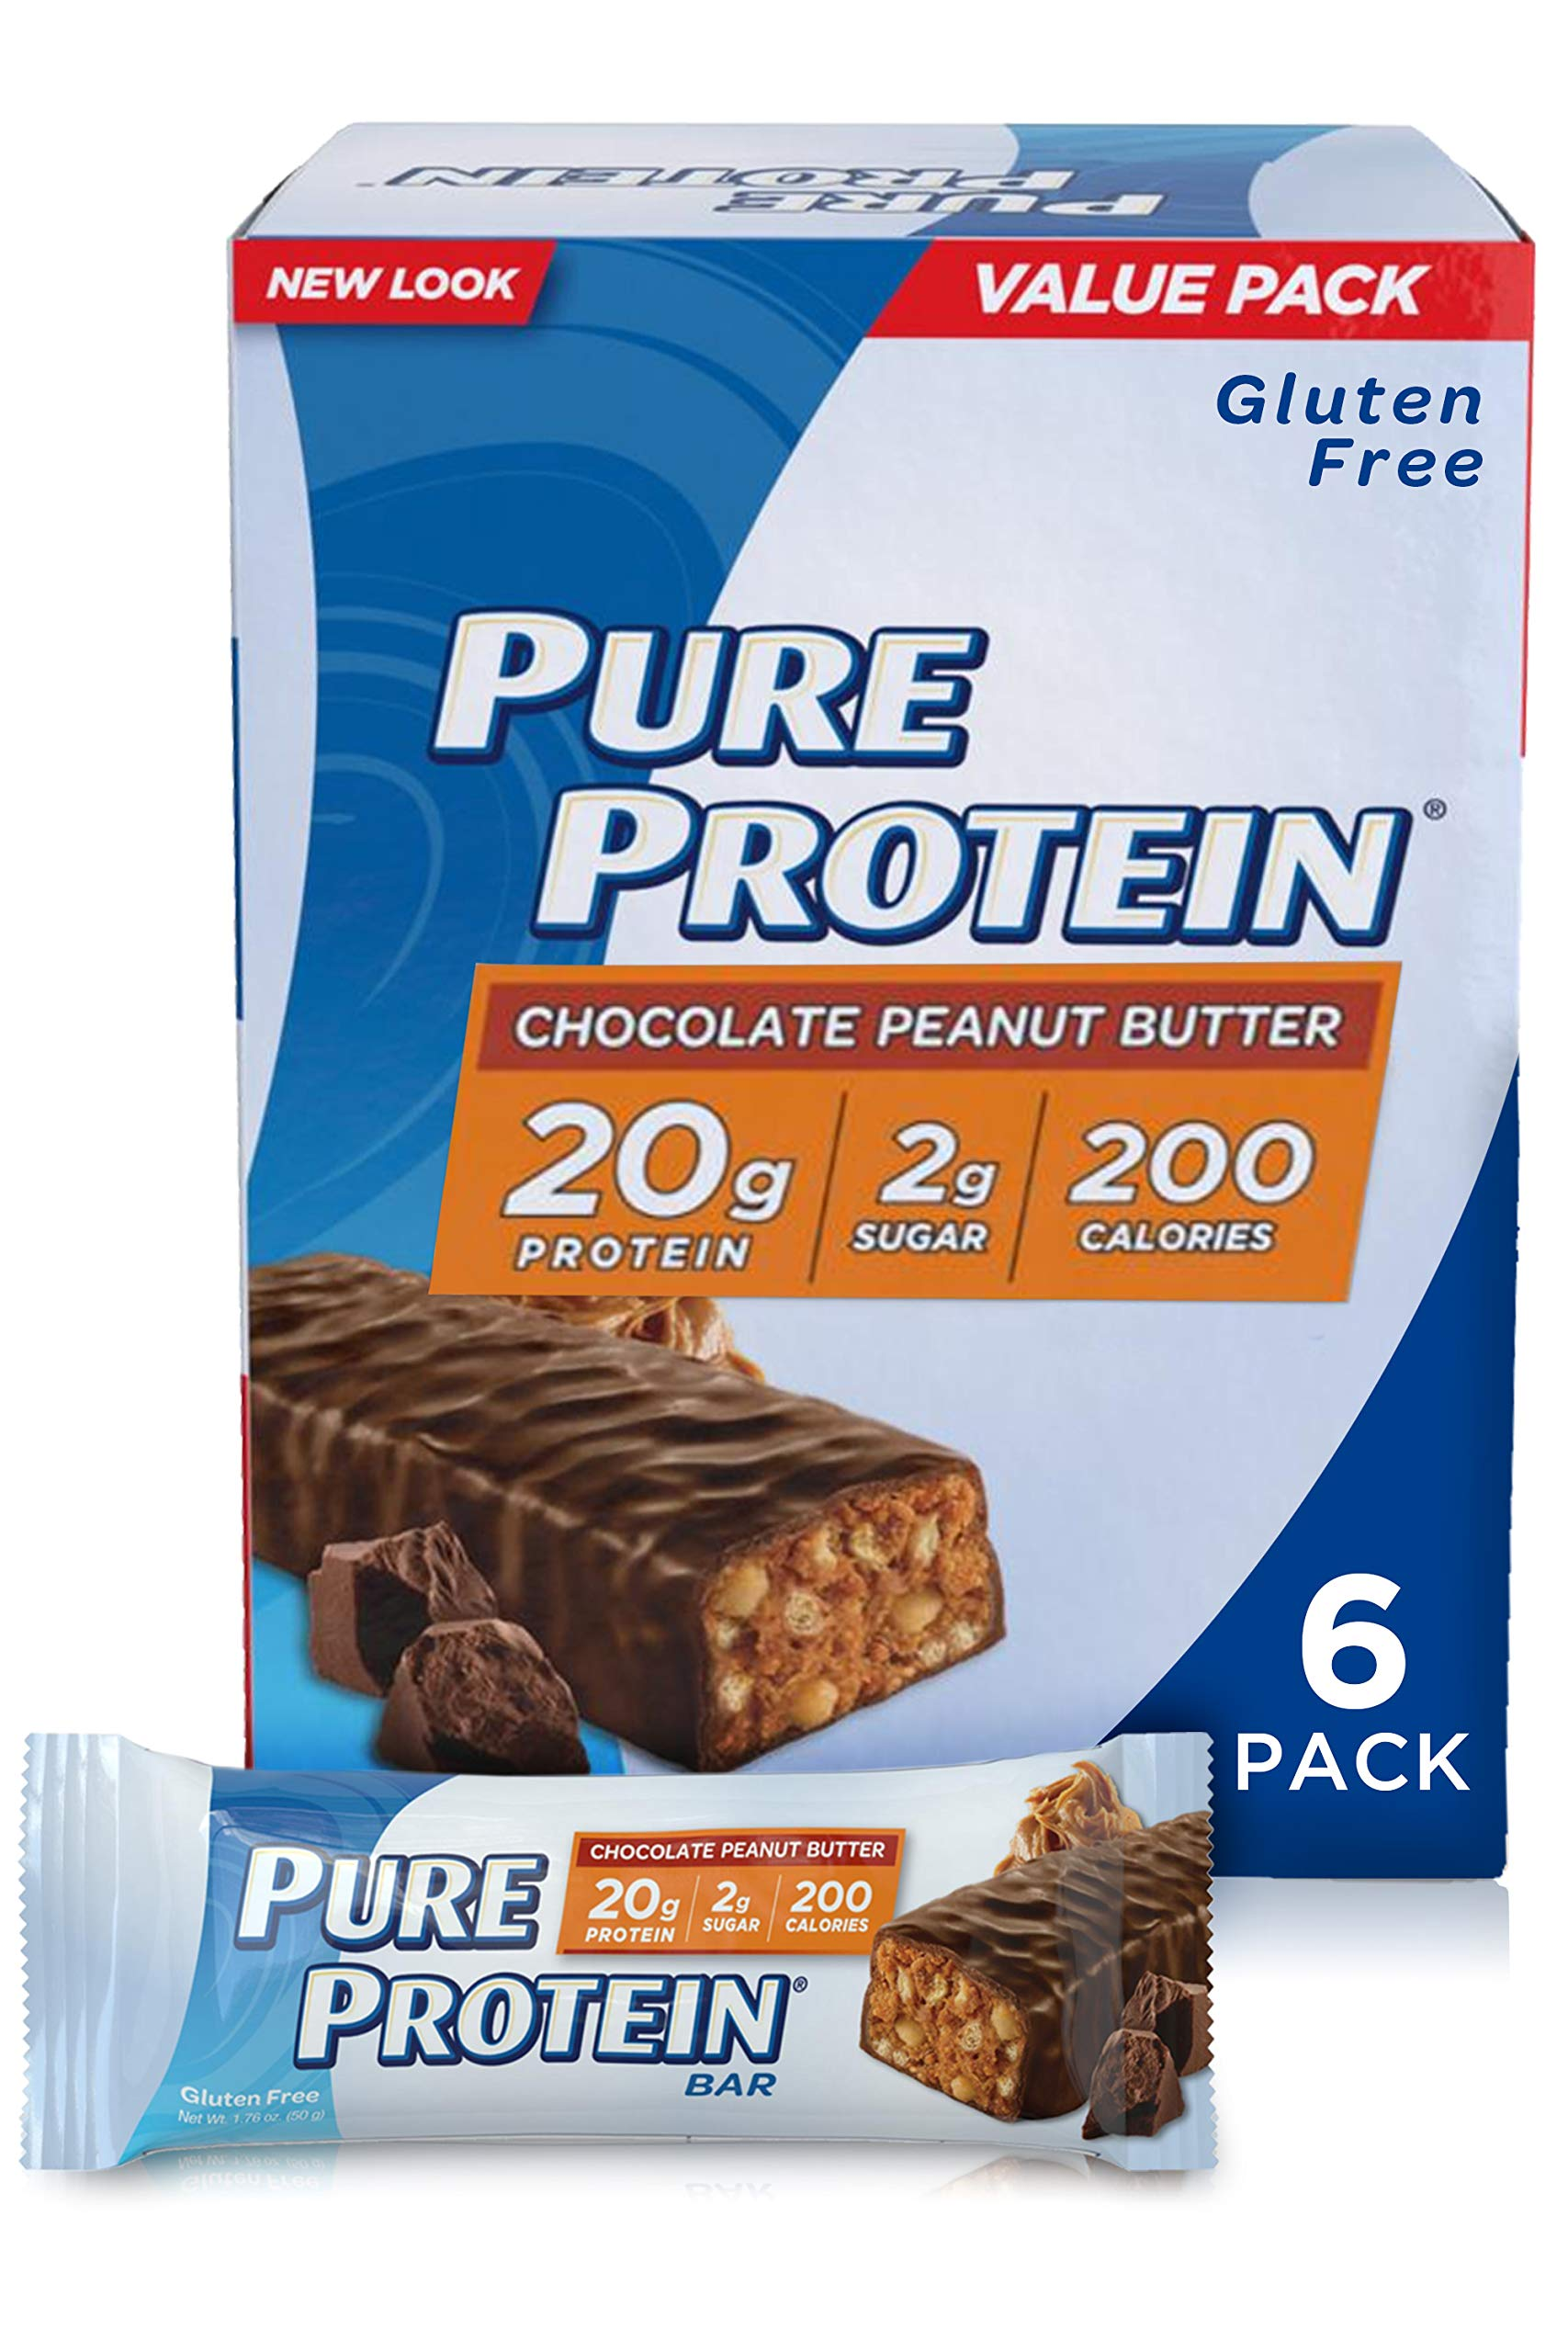 Pure Protein Bars, High Protein, Nutritious Snacks to Support Energy, Low Sugar, Gluten Free, Chocolate Peanut Butter, 1.76oz, 6 Pack